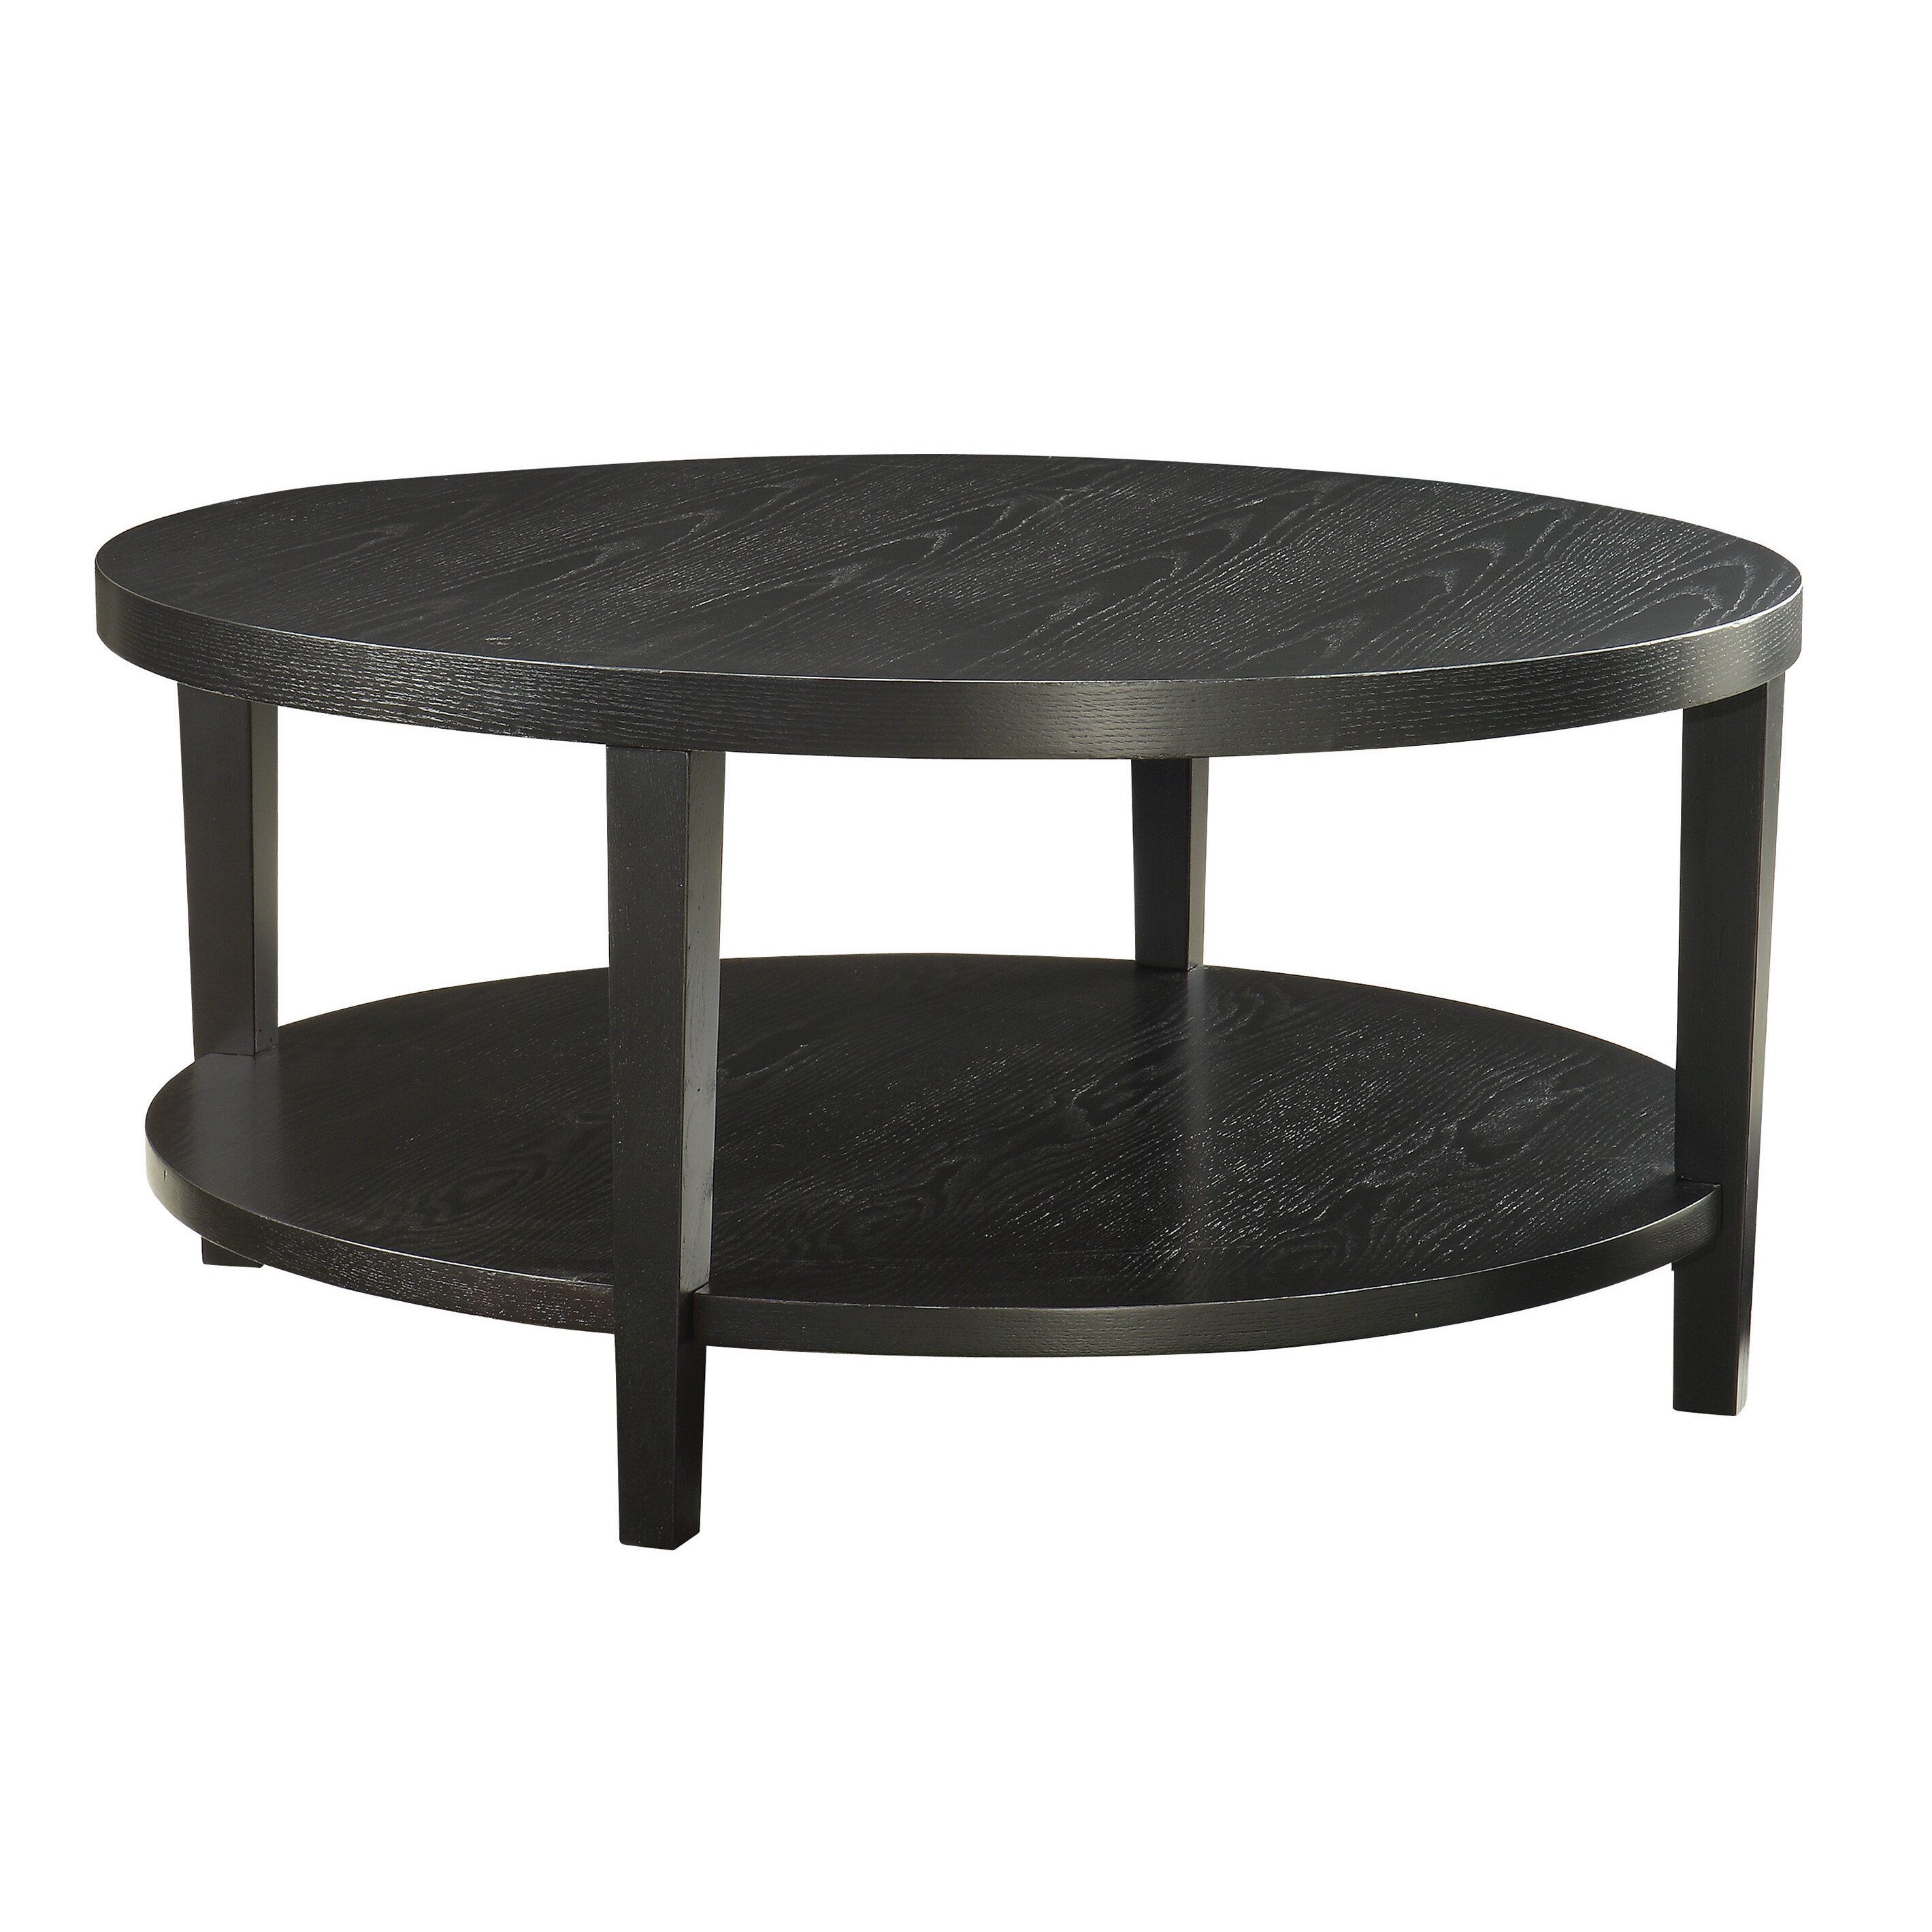 Brayden studio fabiano round coffee table reviews wayfair What to put on a round coffee table